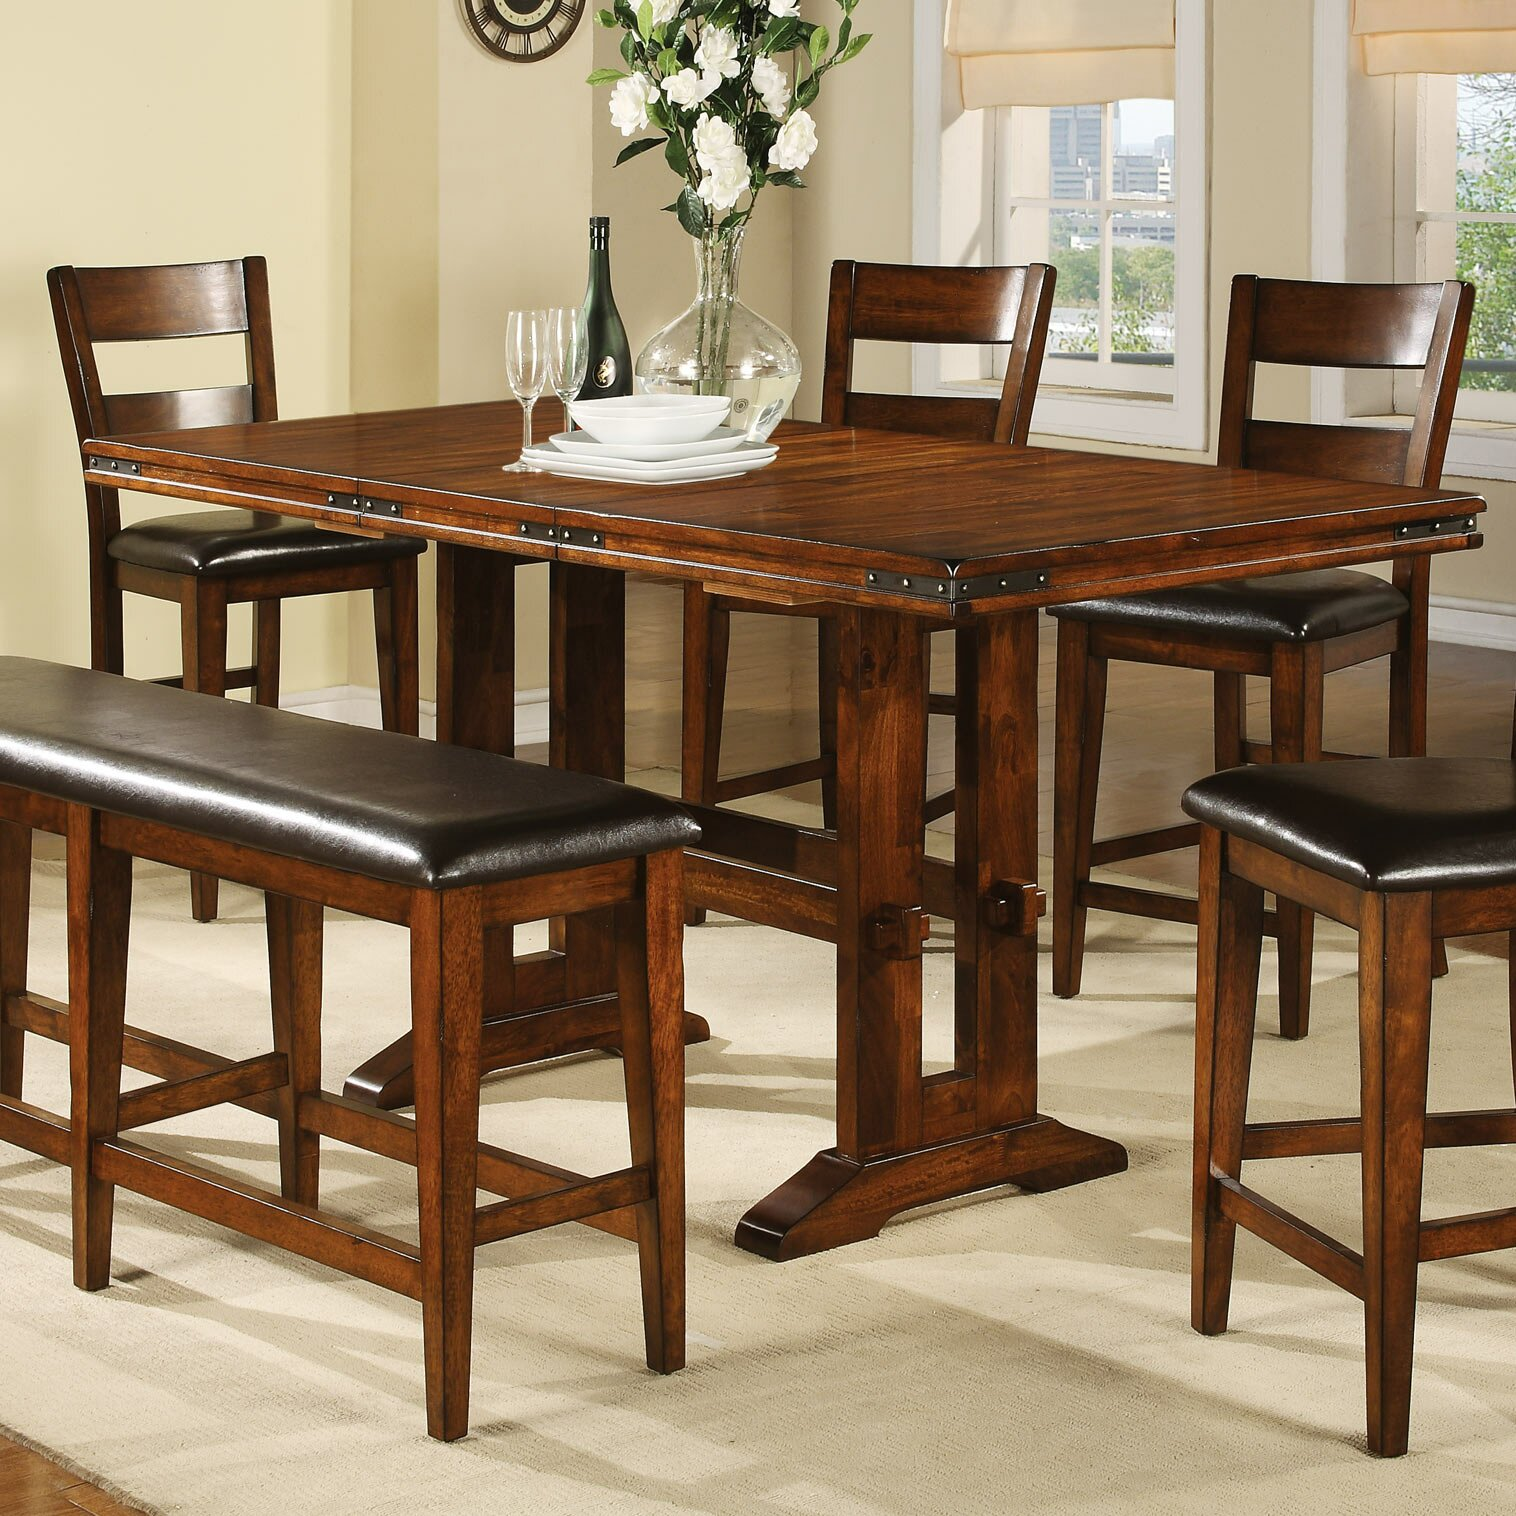 Loon Peak Agatha Counter Height Extendable Dining Table  : Loon Peak Agatha Counter Height Extendable Dining Table LOON1761 from www.wayfairsupply.com size 1516 x 1516 jpeg 491kB